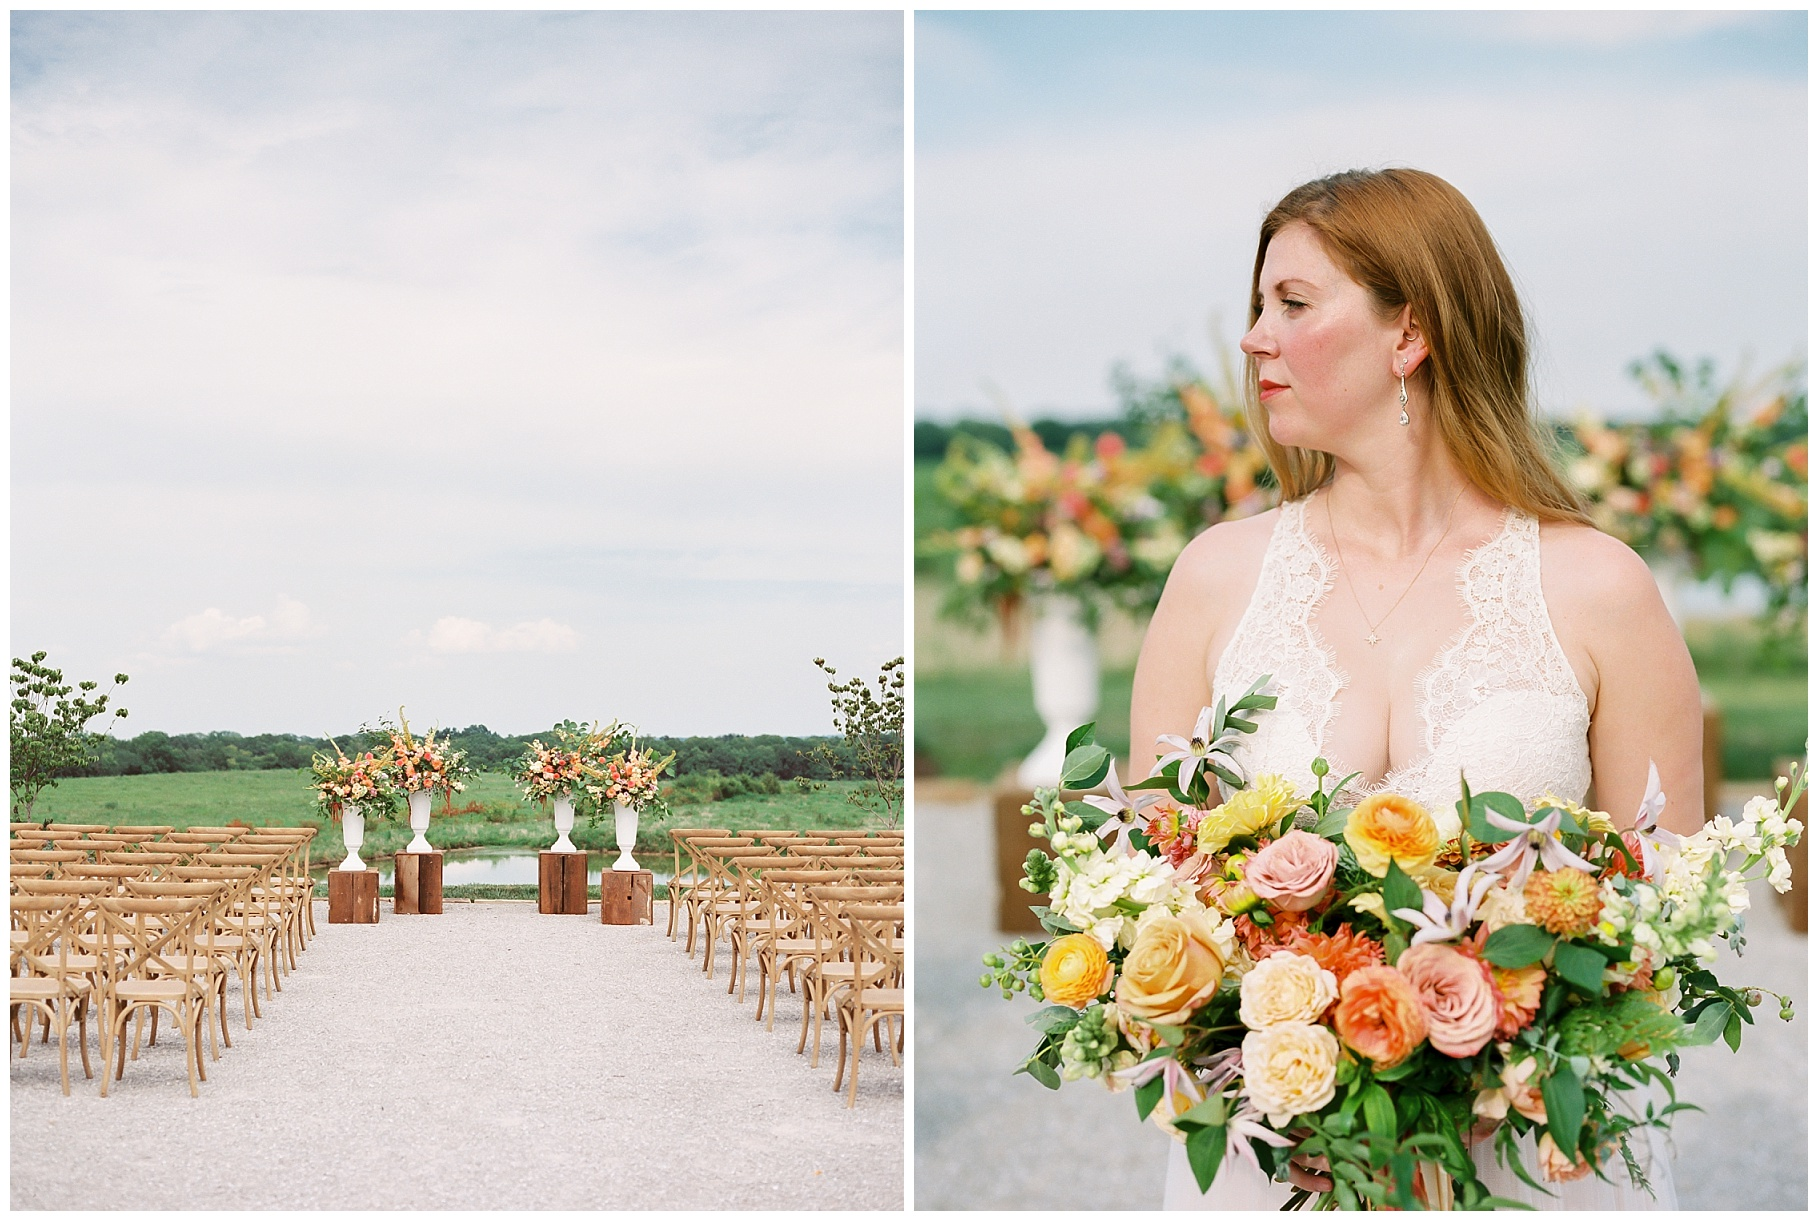 Late Summer Wedding With Pastel Toned Soiree at Blue Bell Farm by Kelsi Kliethermes Photography Best Columbia Missouri Wedding Photographer_0045.jpg